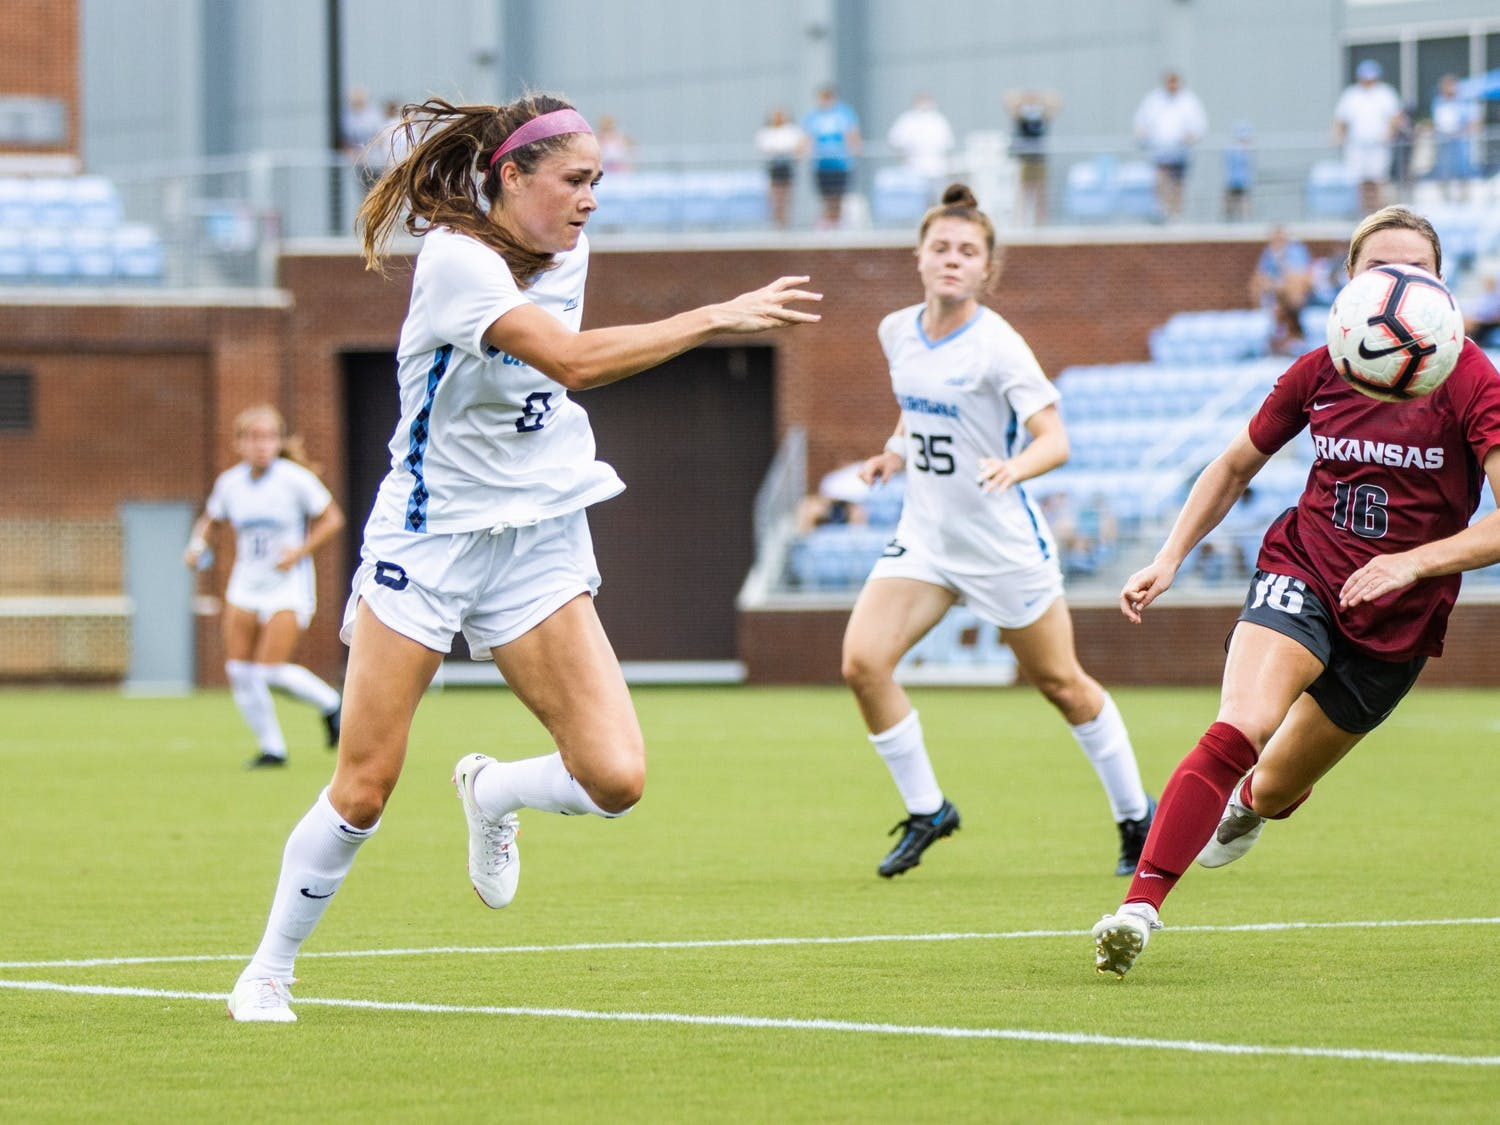 UNC Sophomore Forward Emily Moxley (8) pursues the ball during the Tar Heels' game against the Arkansas Razorbacks at Dorrance Field on Sunday, Aug. 22.